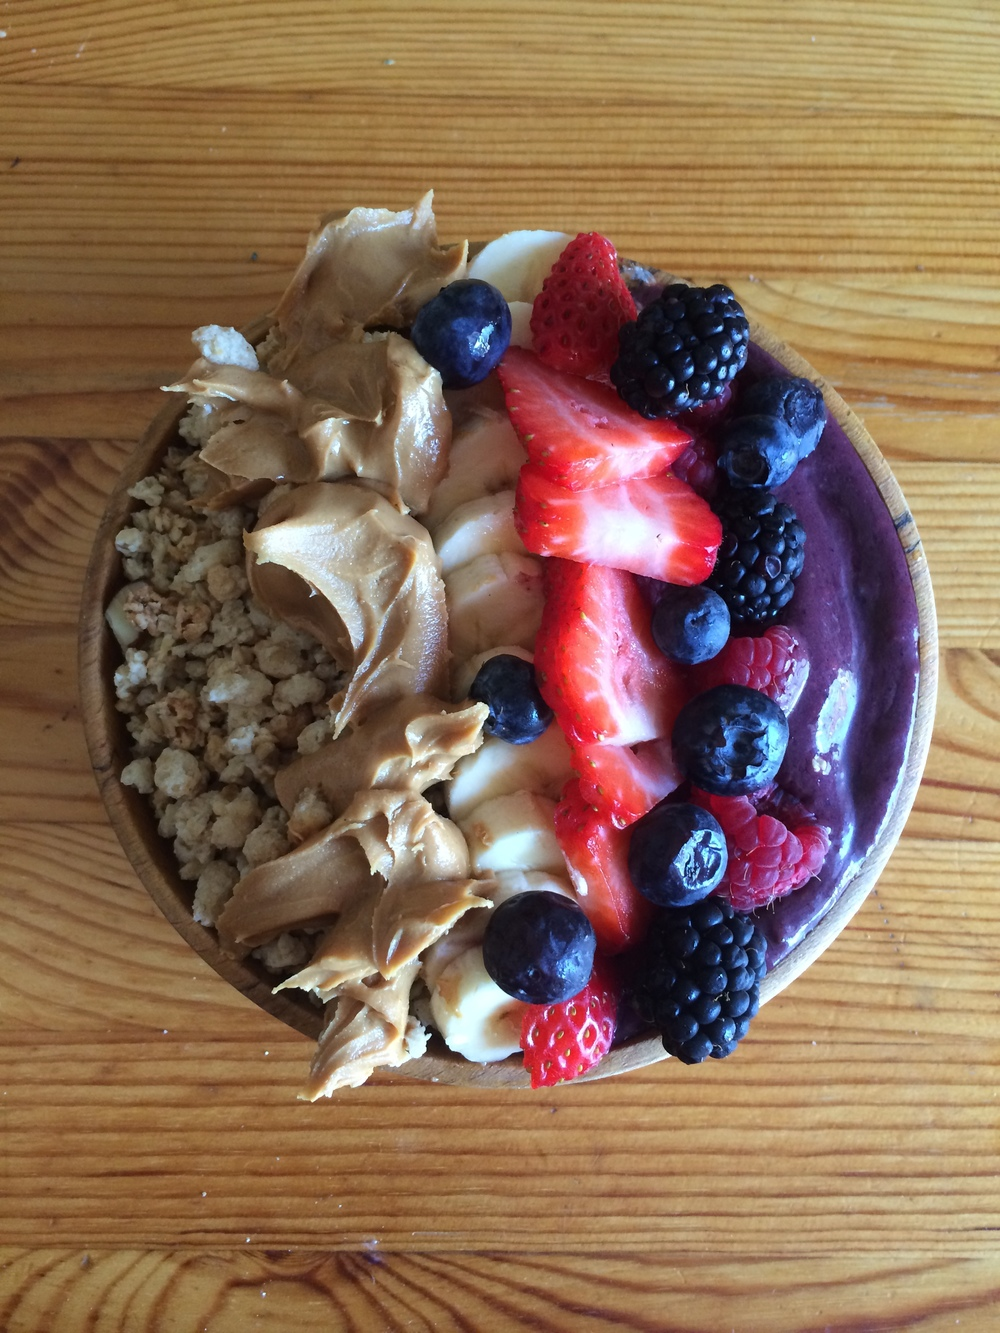 berry acai bowl.JPG